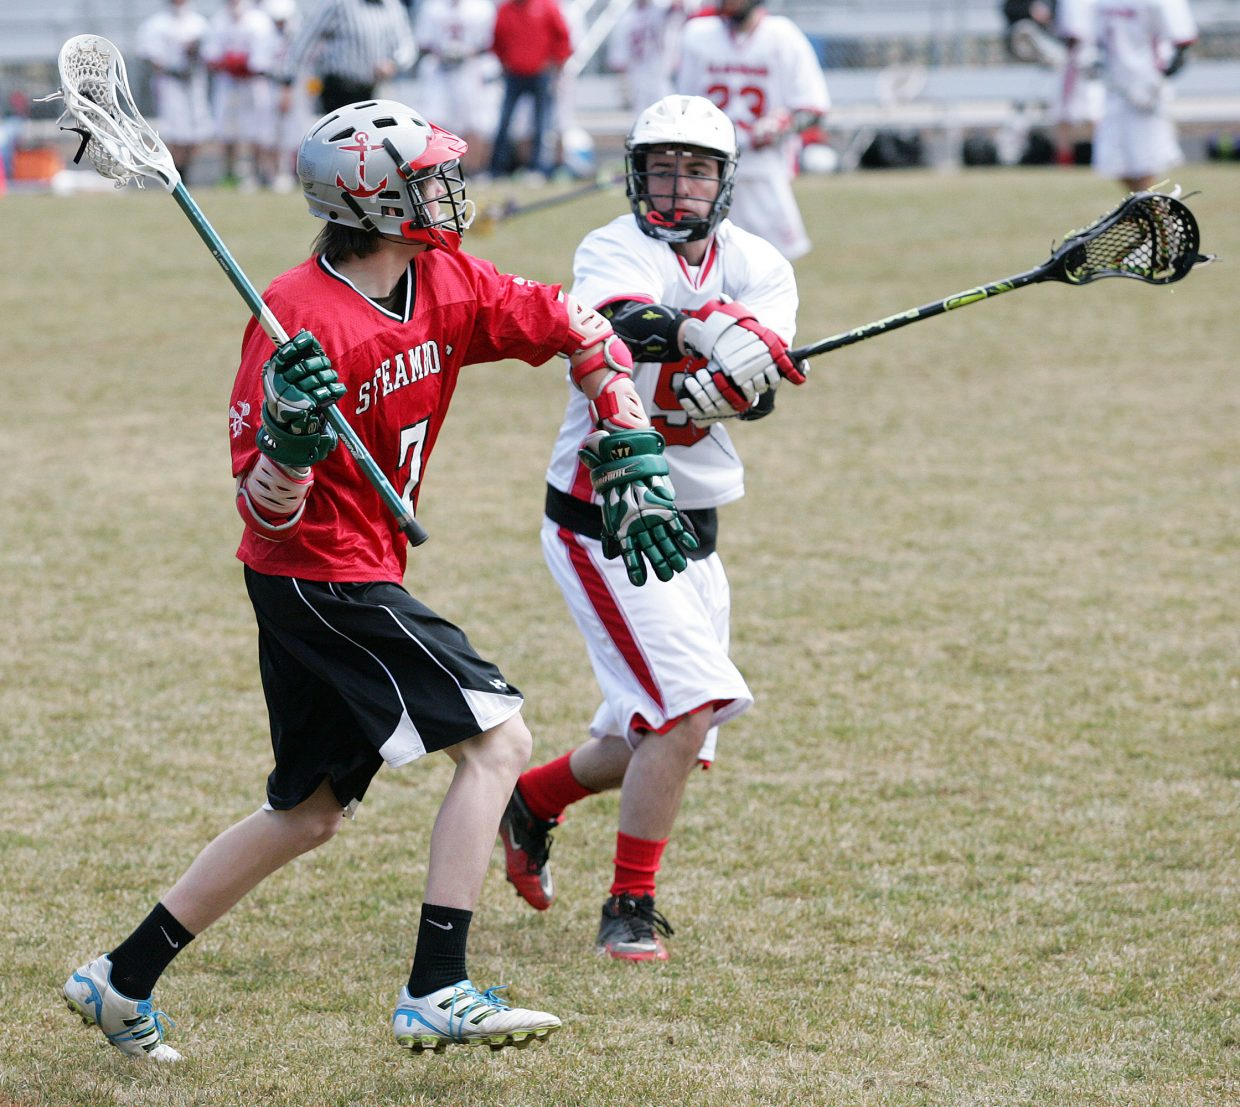 Steamboat Springs' Logan Banning looks to pass in the face of defensive pressure from Glenwood Springs' Jimmy Butcher.